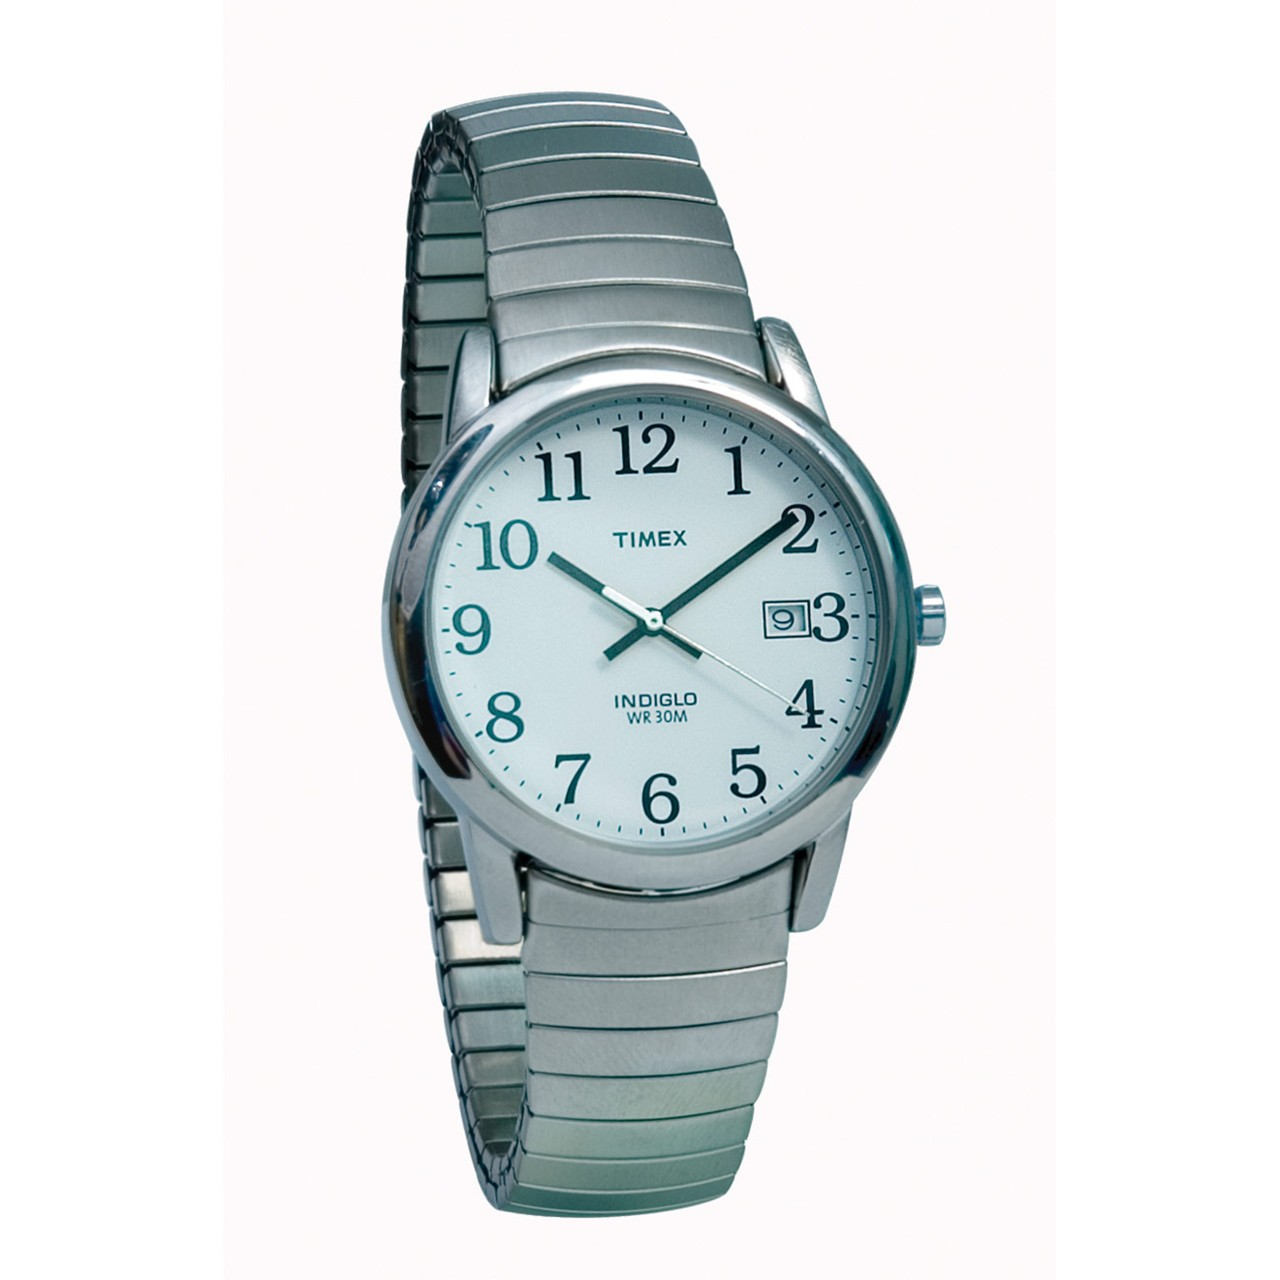 Maxiaids timex indiglo watch mens chrome with expansion band for Indiglo watches